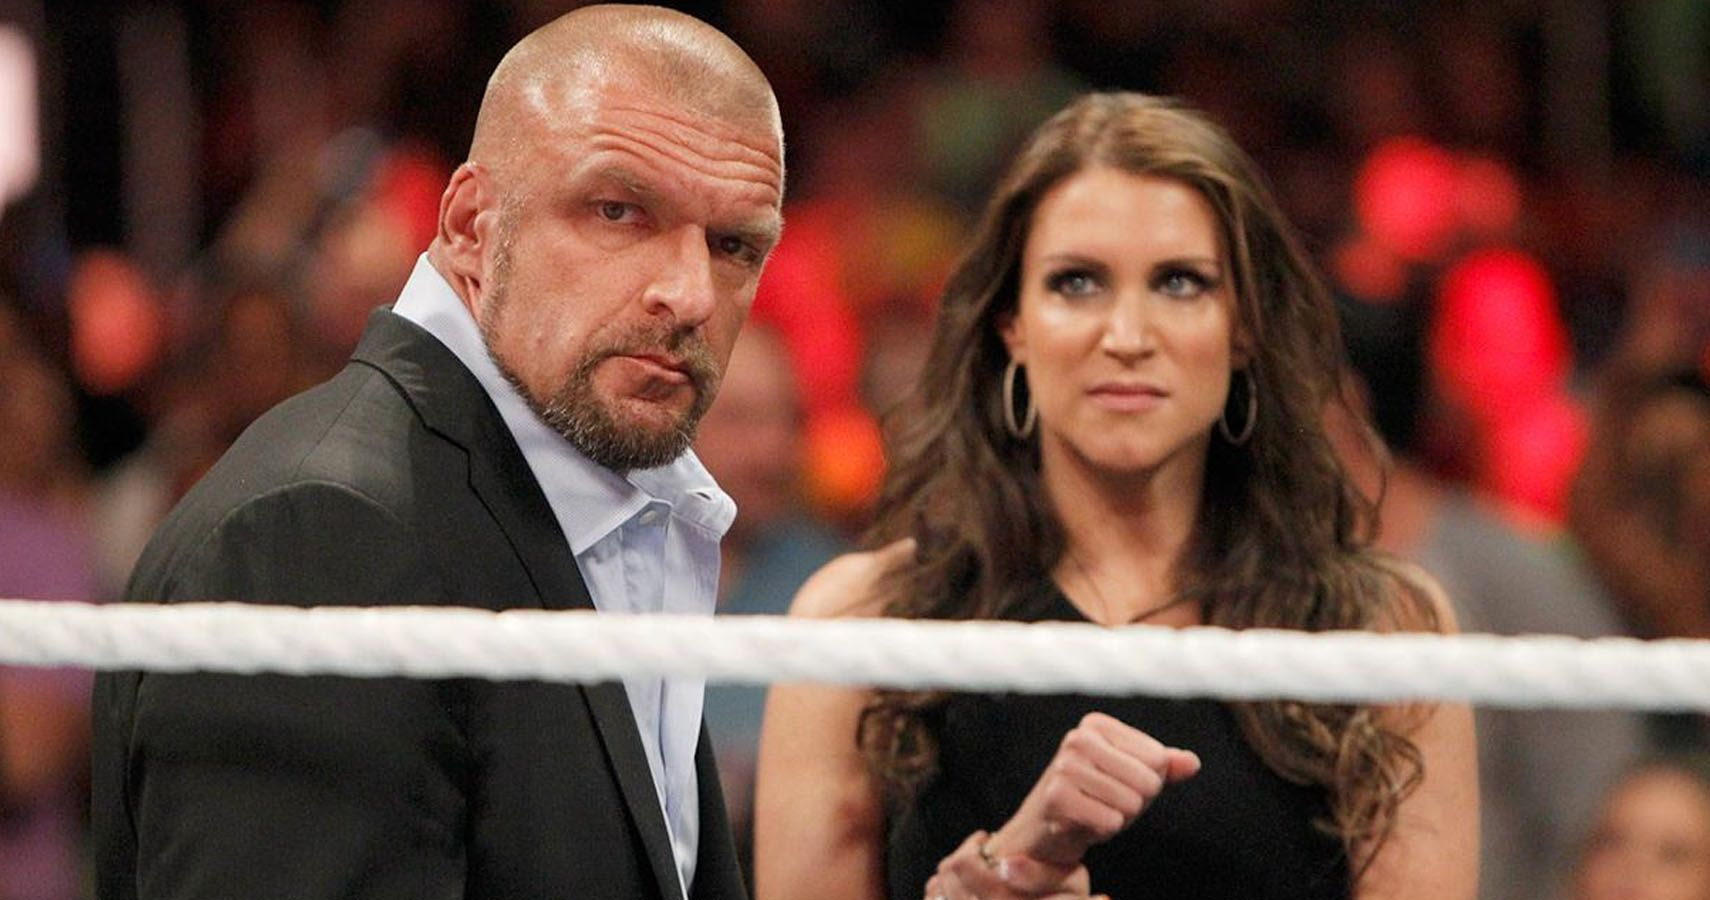 Pictures of triple h and stephanie mcmahon kids 1353 best Wreaths, Bows Decorating Ideas images on Pinterest